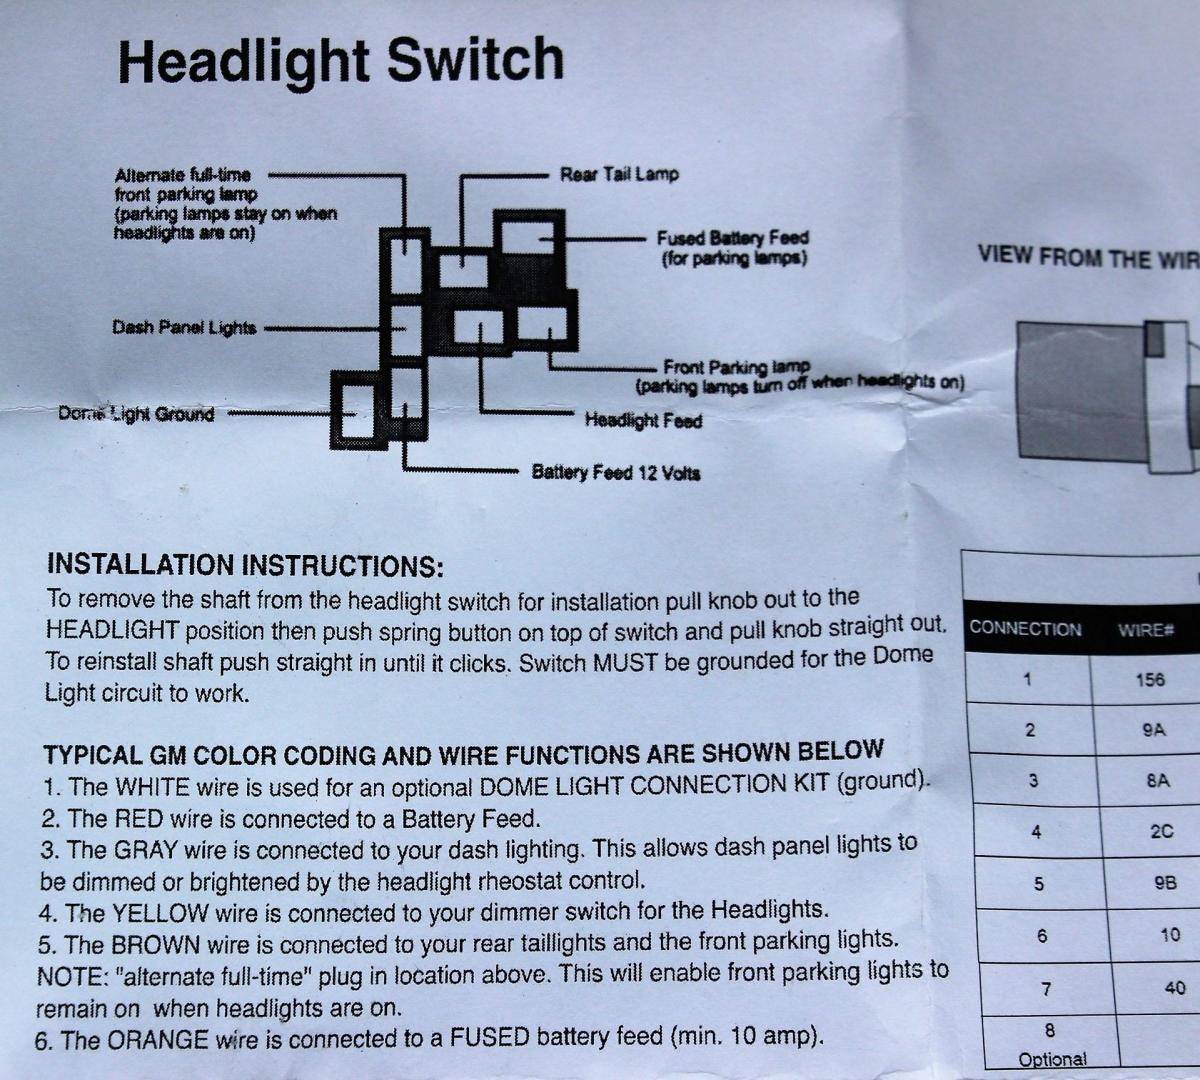 Hot Rod Headlight Switch Wiring Diagram With Interior Dimmer Function